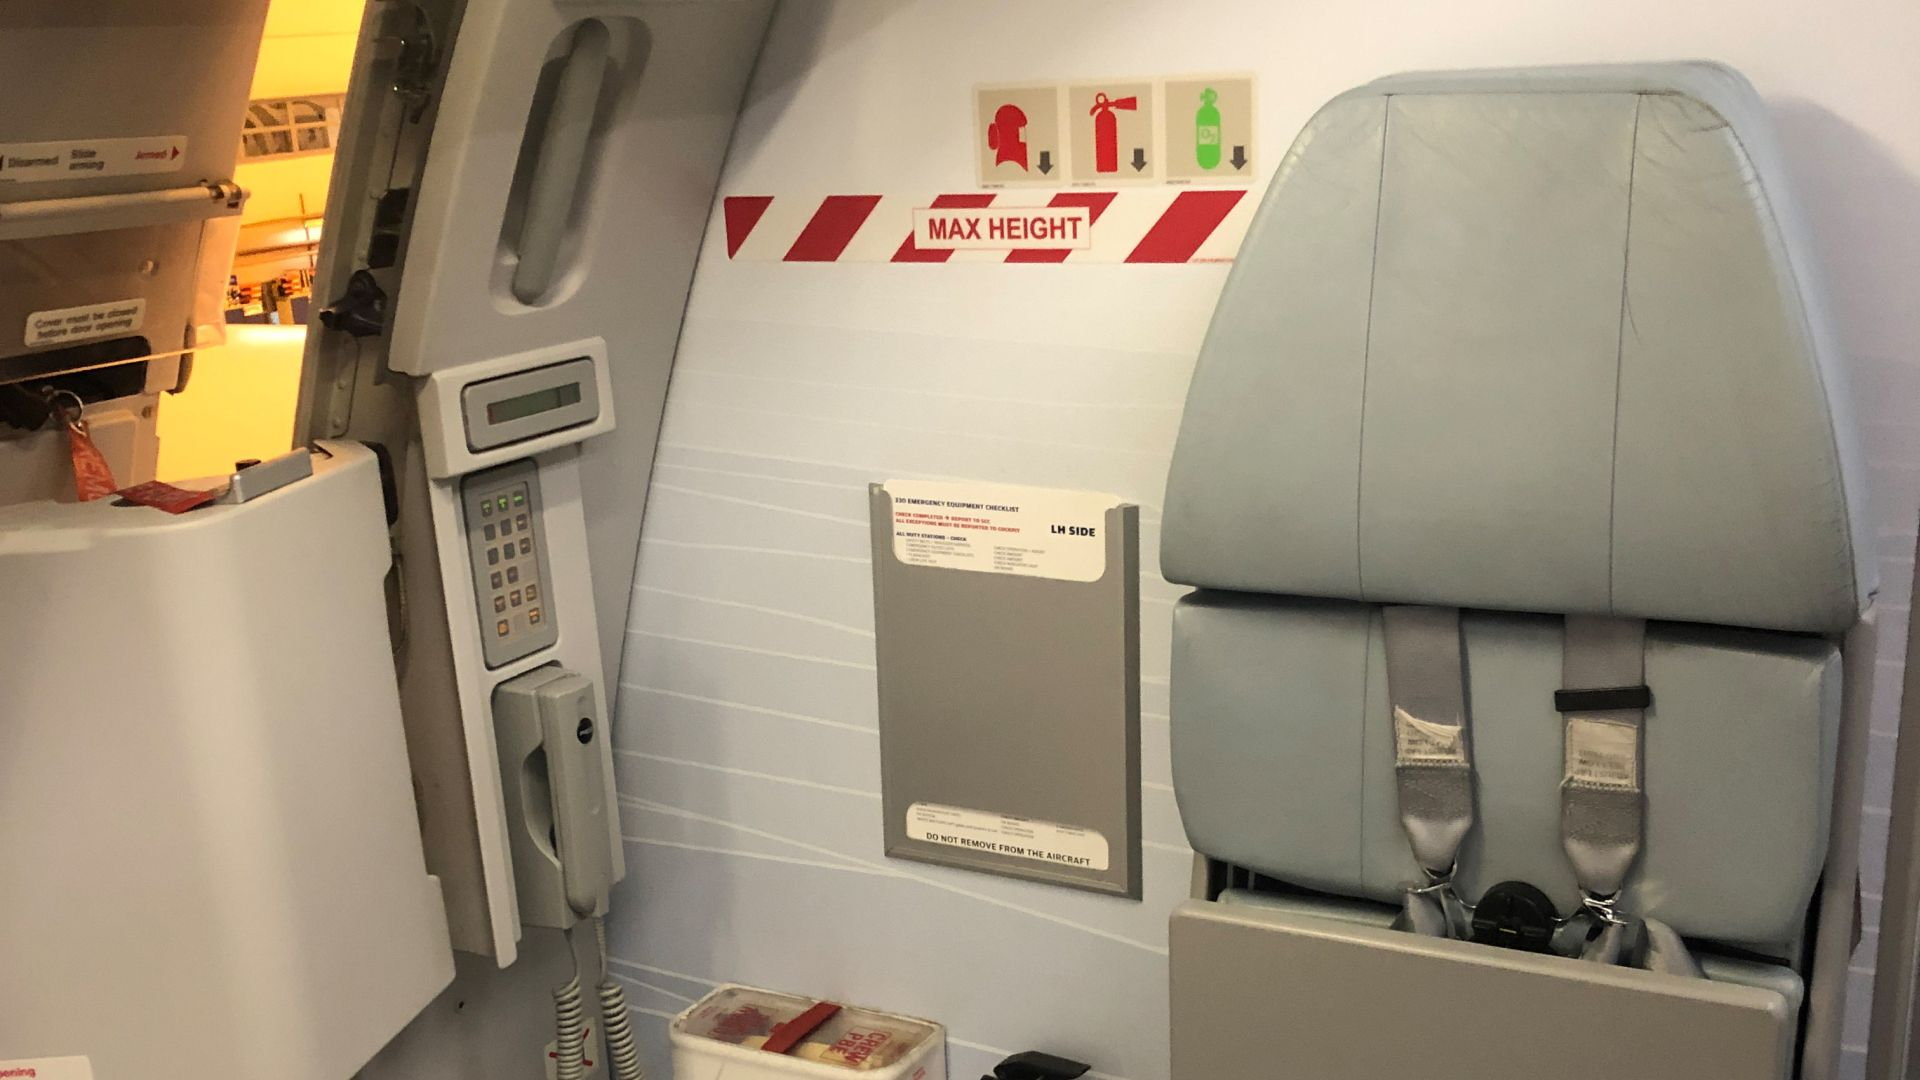 For the temporary cargo transport in the cabin safety procedures have to be adapted